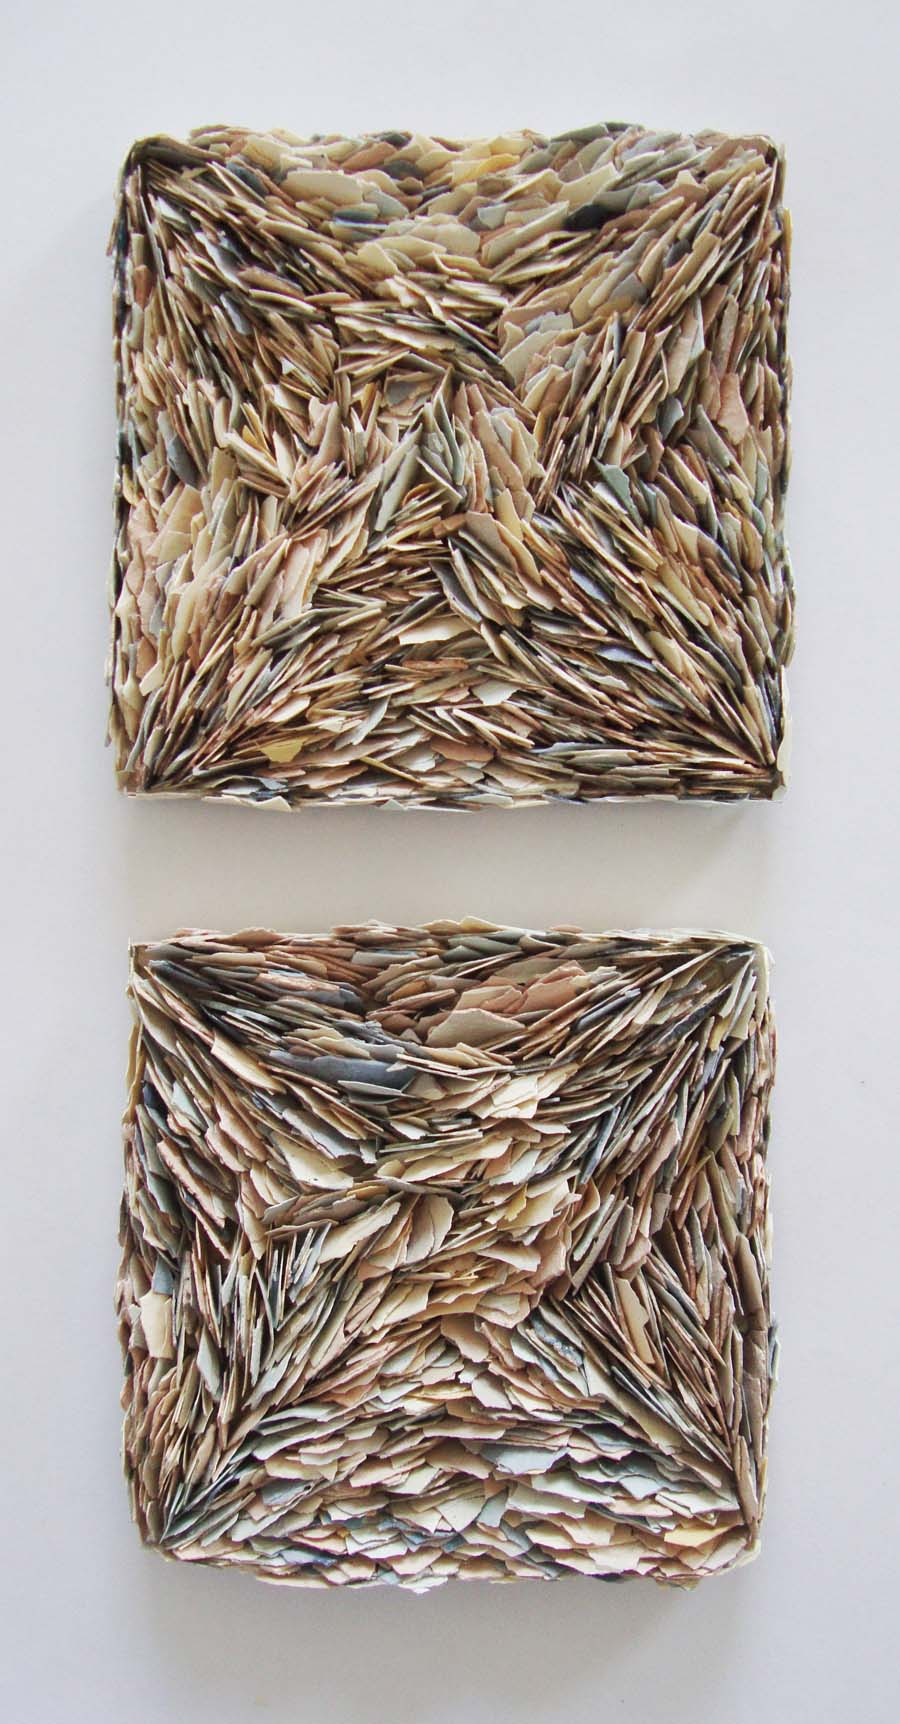 Jessica Dupuis - 2 - ceramic and gift box - 3.75 x 3.75 x .5 inches each 150.00